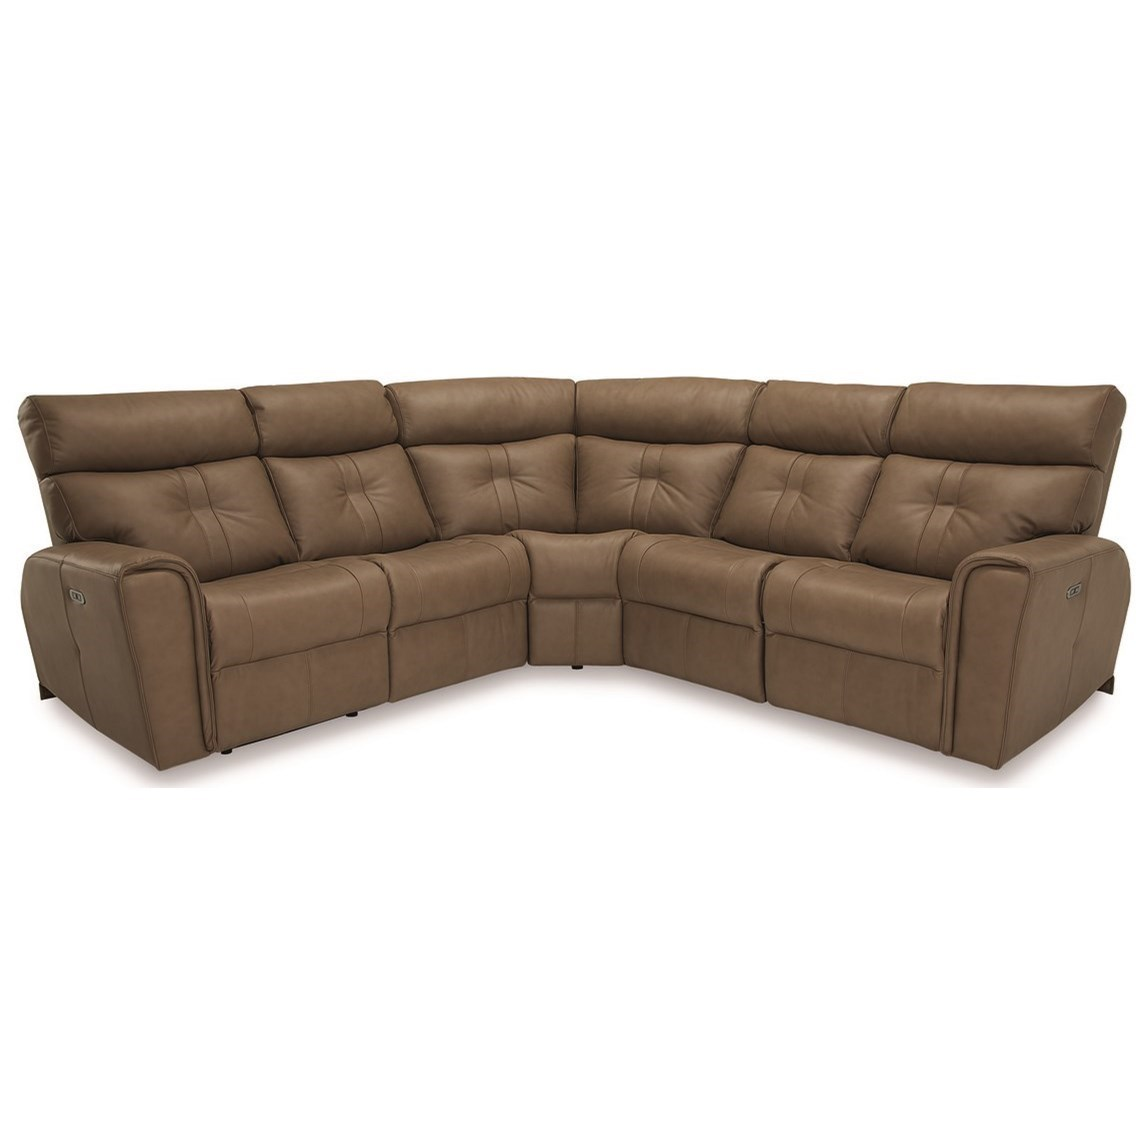 sectional sofas recliners how much does it cost to reupholster a sofa bed palliser acacia contemporary corner power recliner with headrests